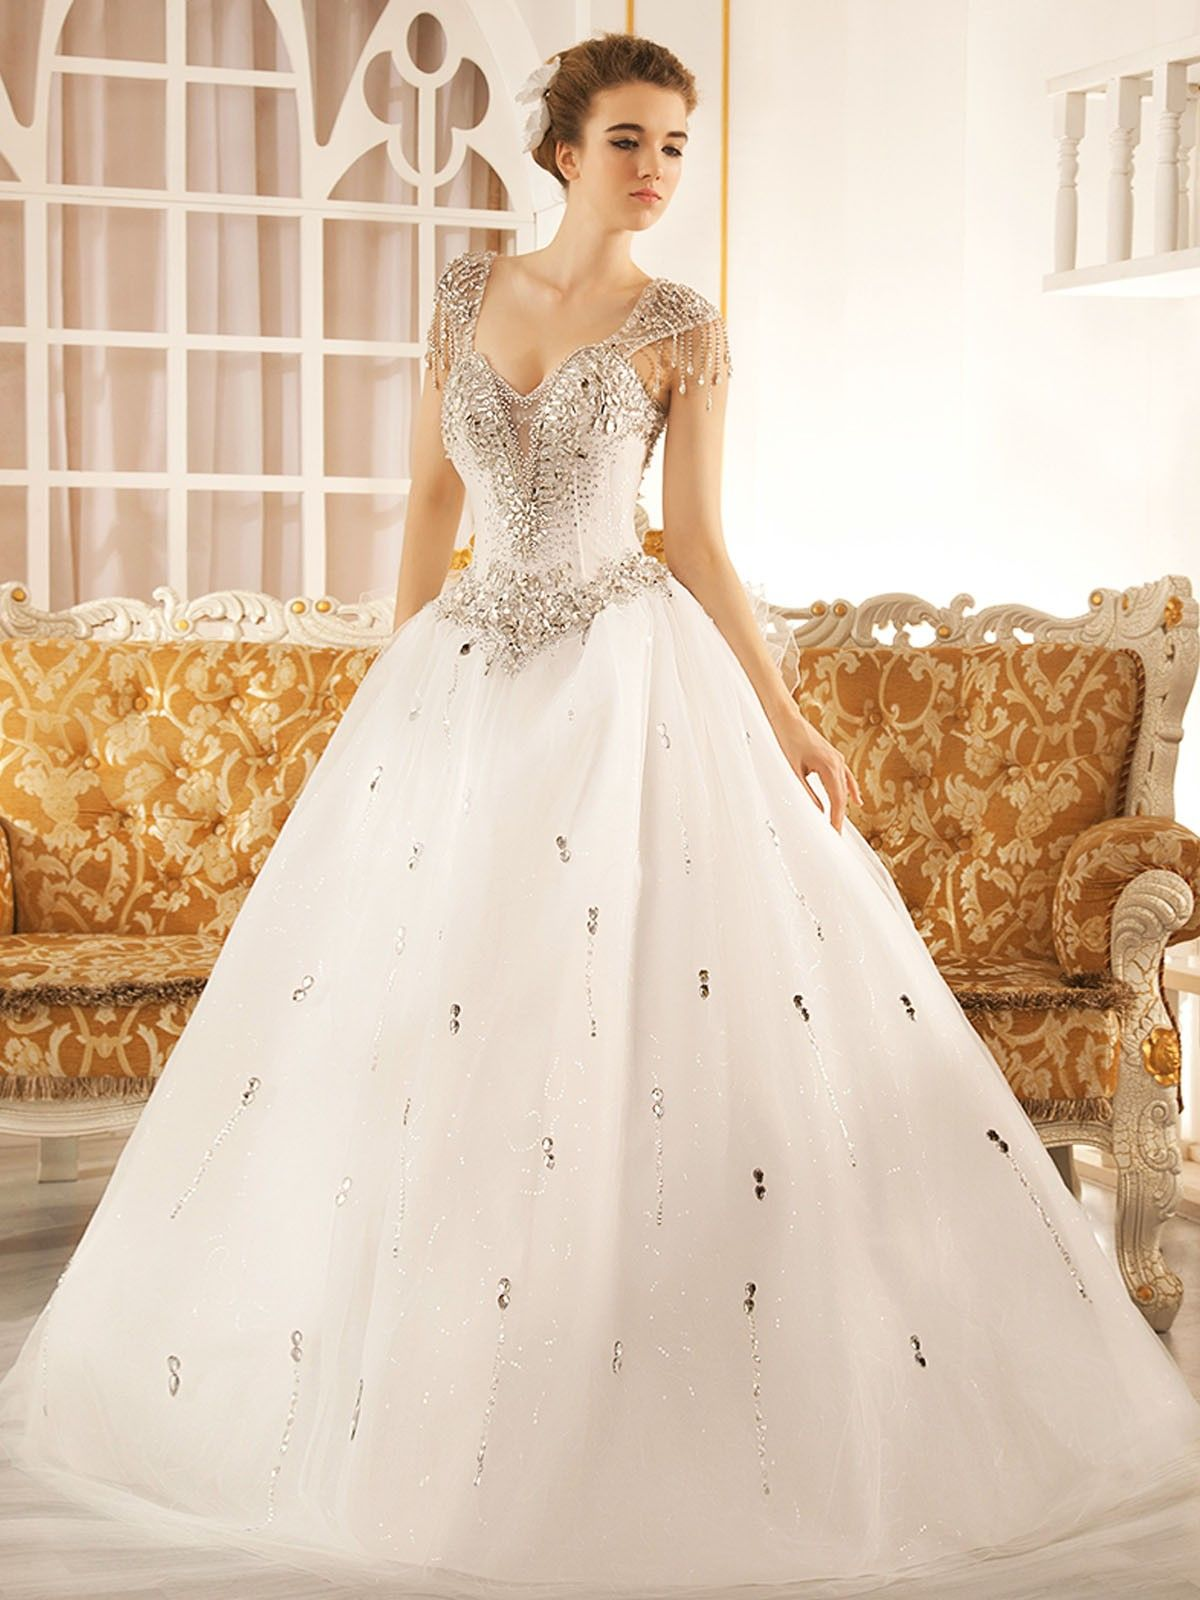 Ivory Square 1.5 Meters Train Tulle Ball Gown Wedding Dress W015